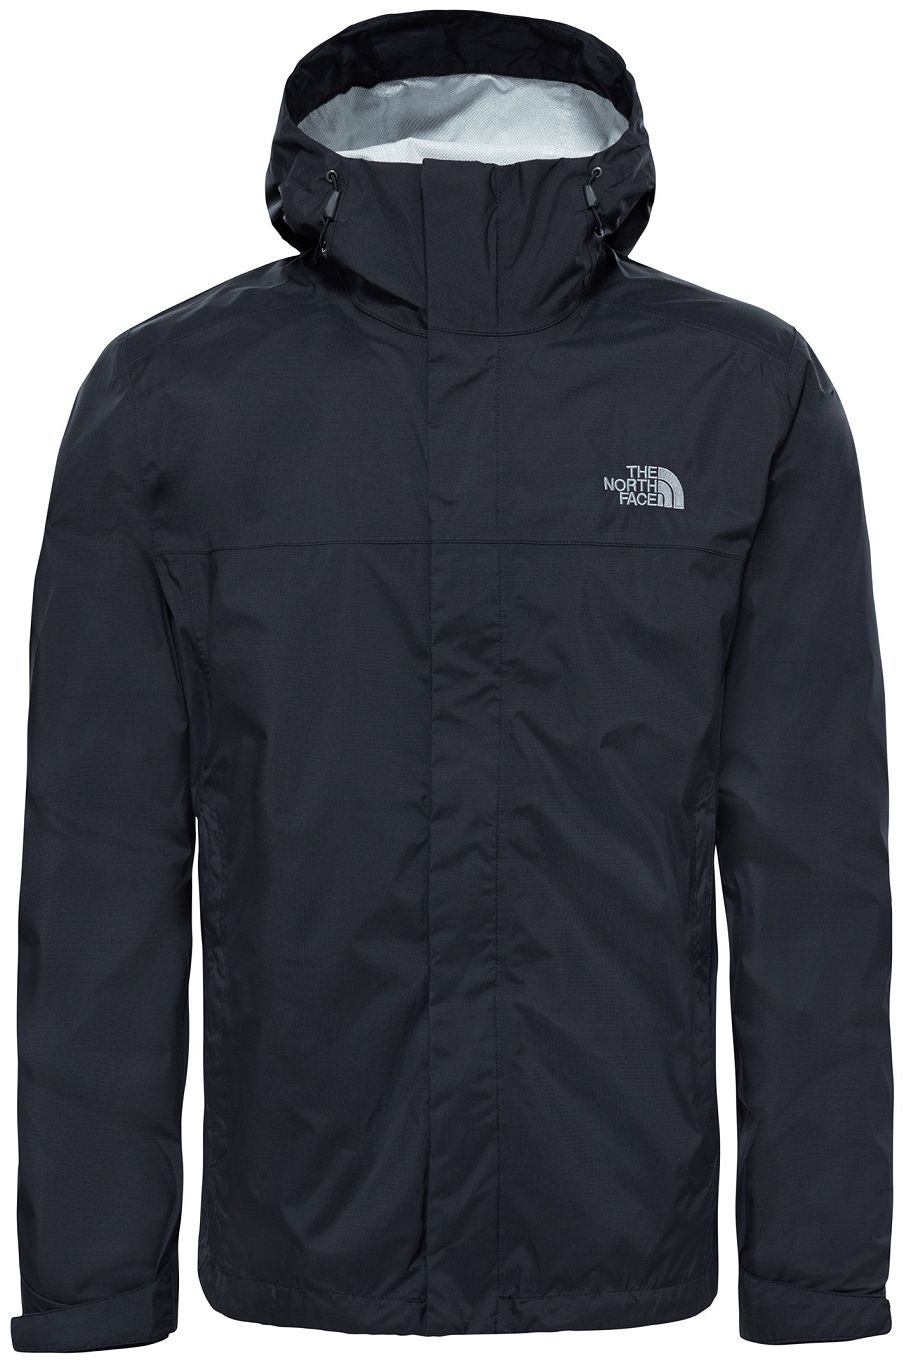 the north face tnf venture 2 herren jacke windjacke. Black Bedroom Furniture Sets. Home Design Ideas